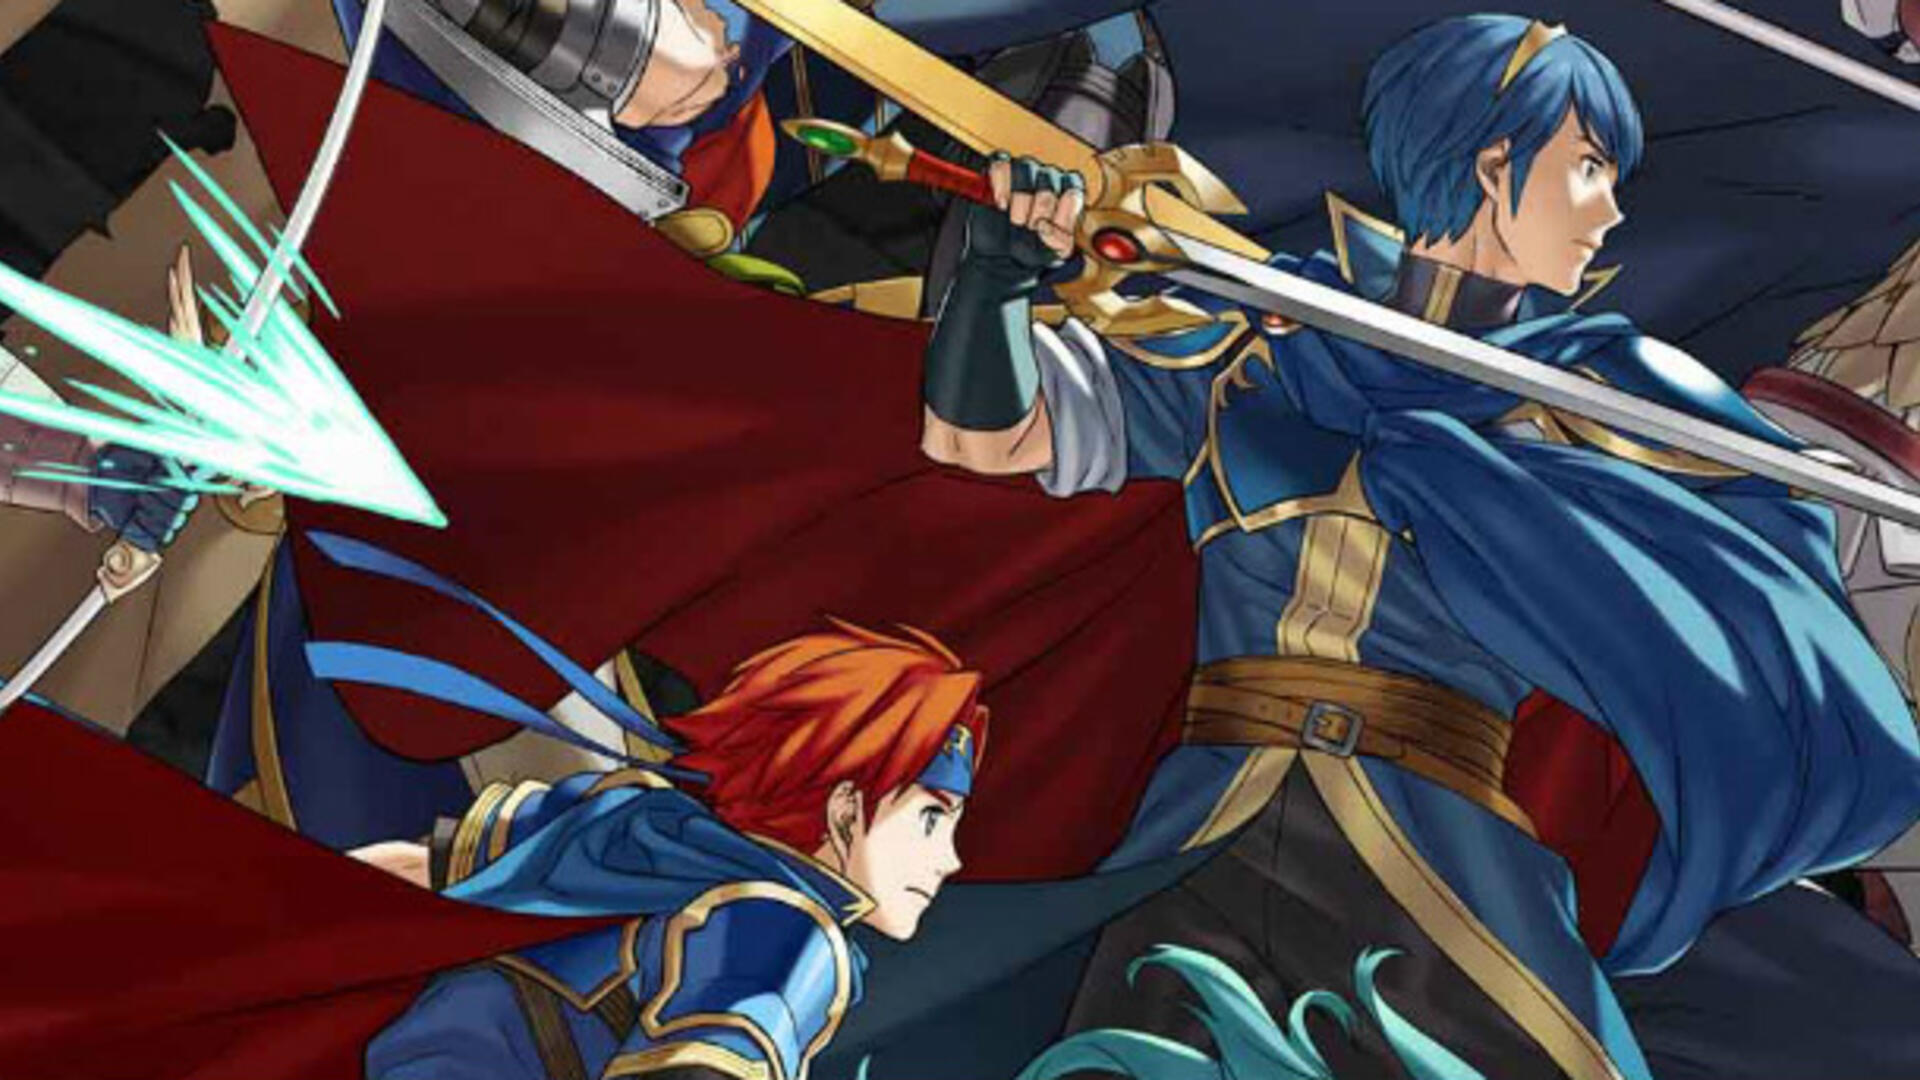 Fire Emblem Heroes: How to Summon Five-Star Characters